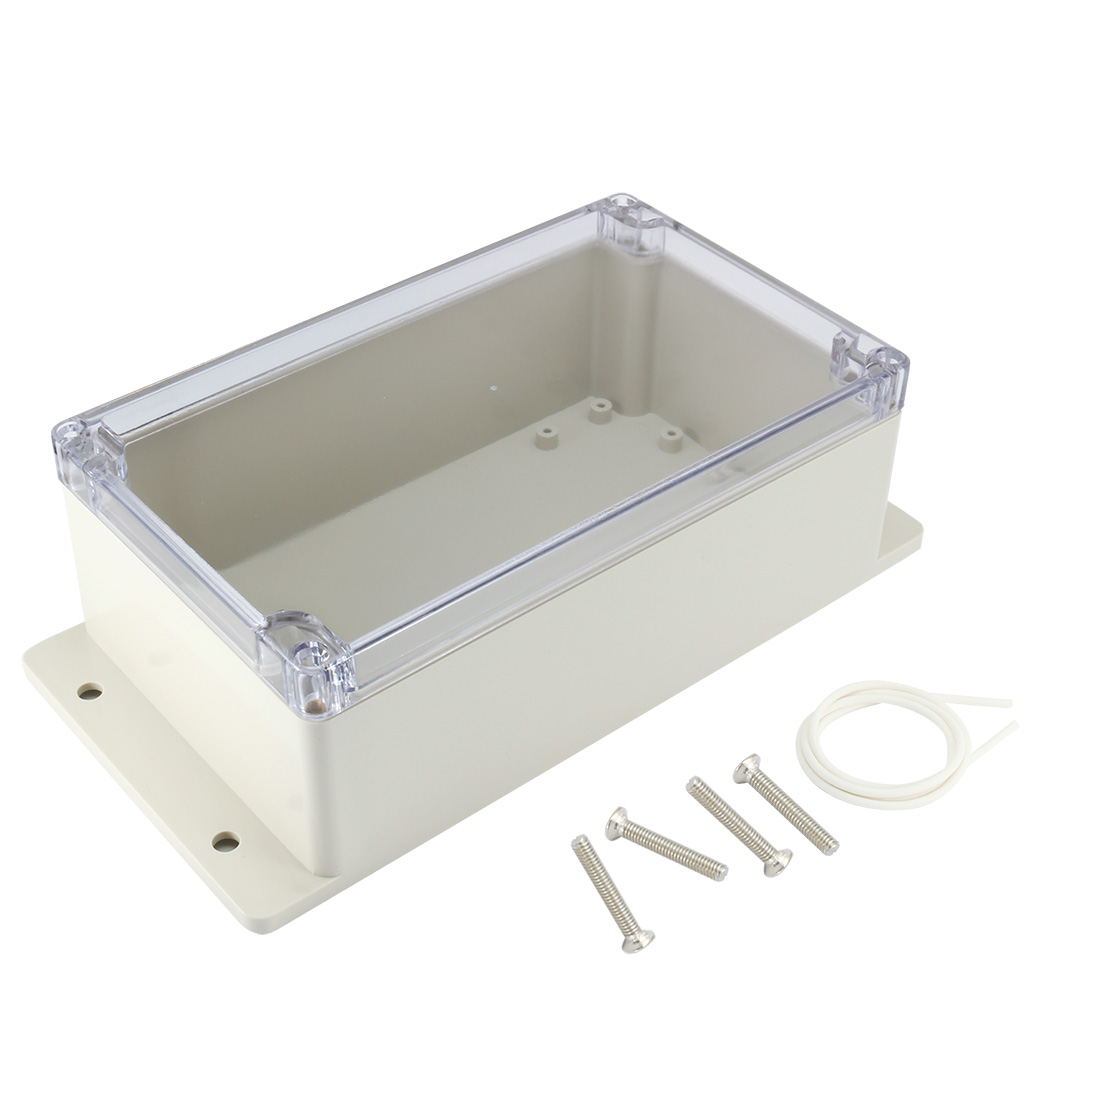 """7.9""""x4.7""""x2.94""""(200mmx120mmx75mm) ABS Junction Box Universal Project Enclosure w PC Transparent Cover"""